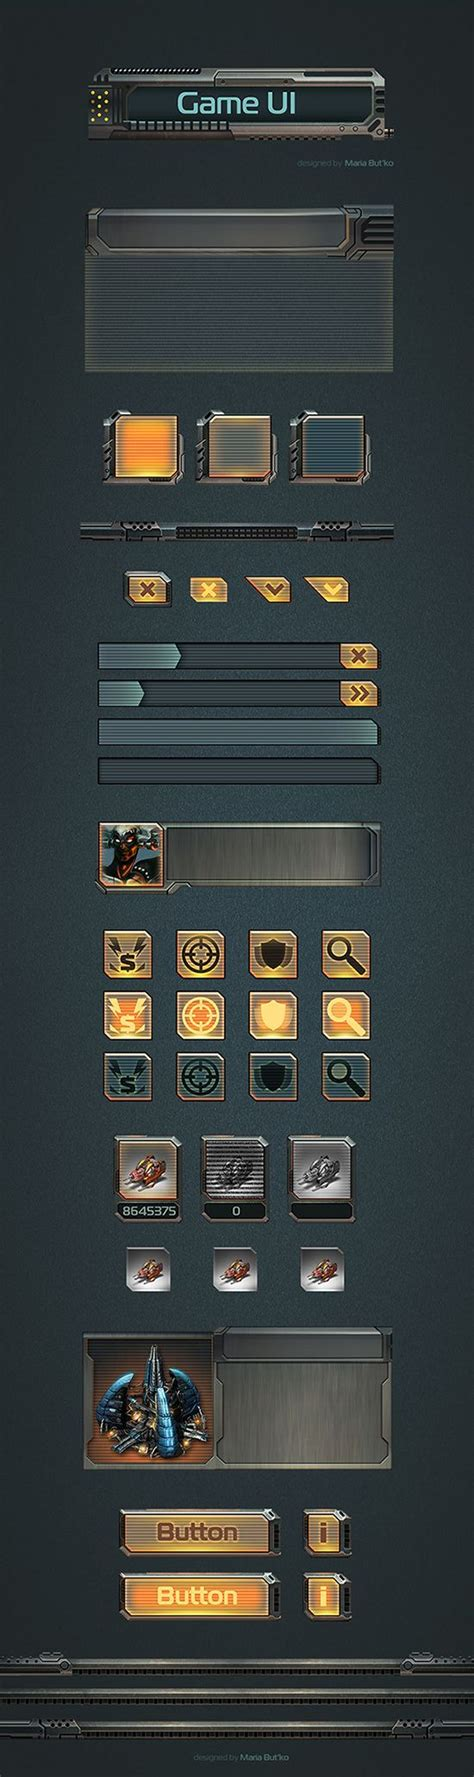 design game gui 22 best gui images on pinterest game design game